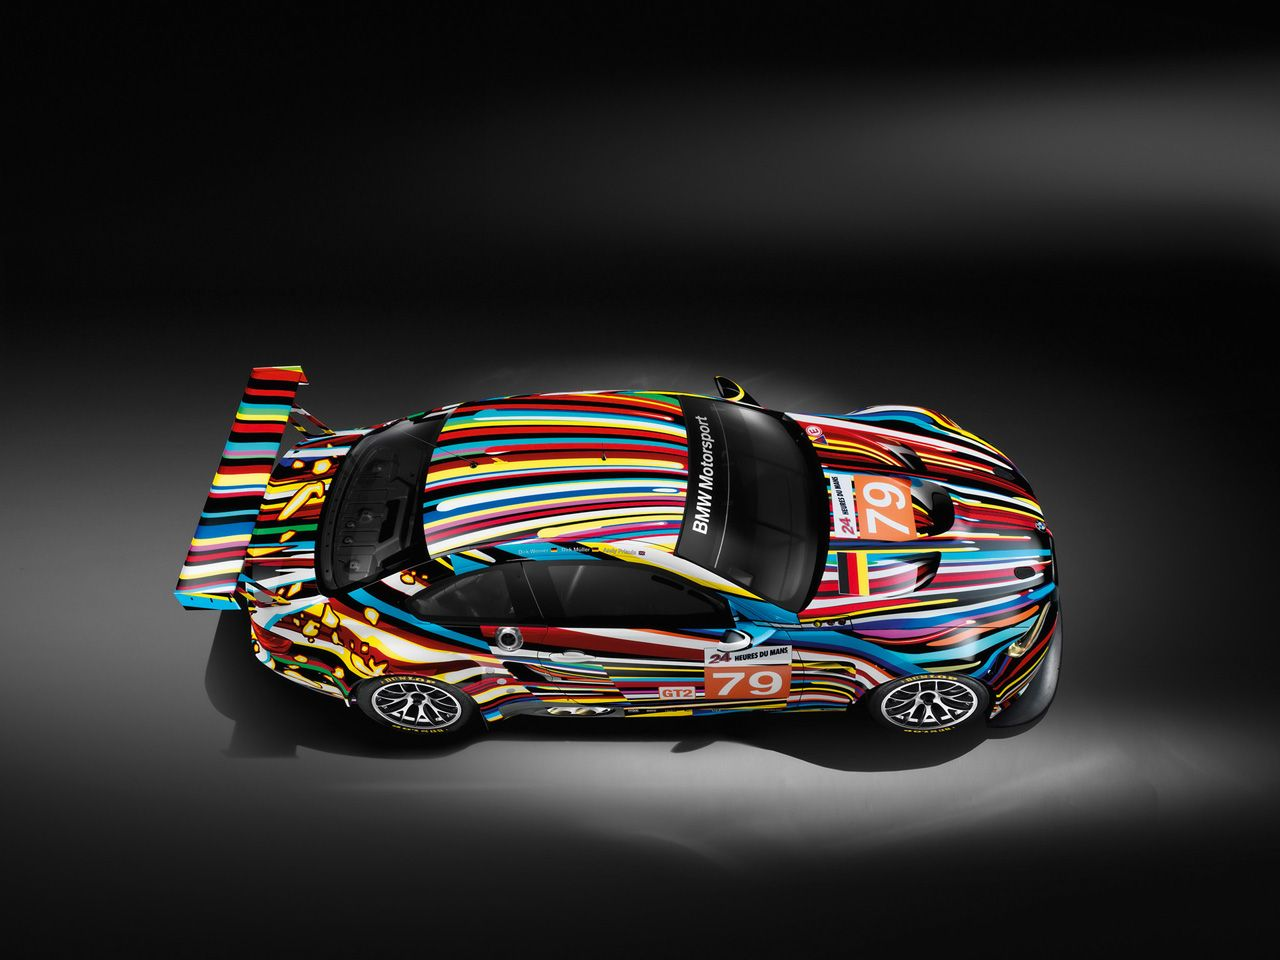 Bmw M3 Gt2 Art Car By Jeff Koons With Images Bmw Art Car Art